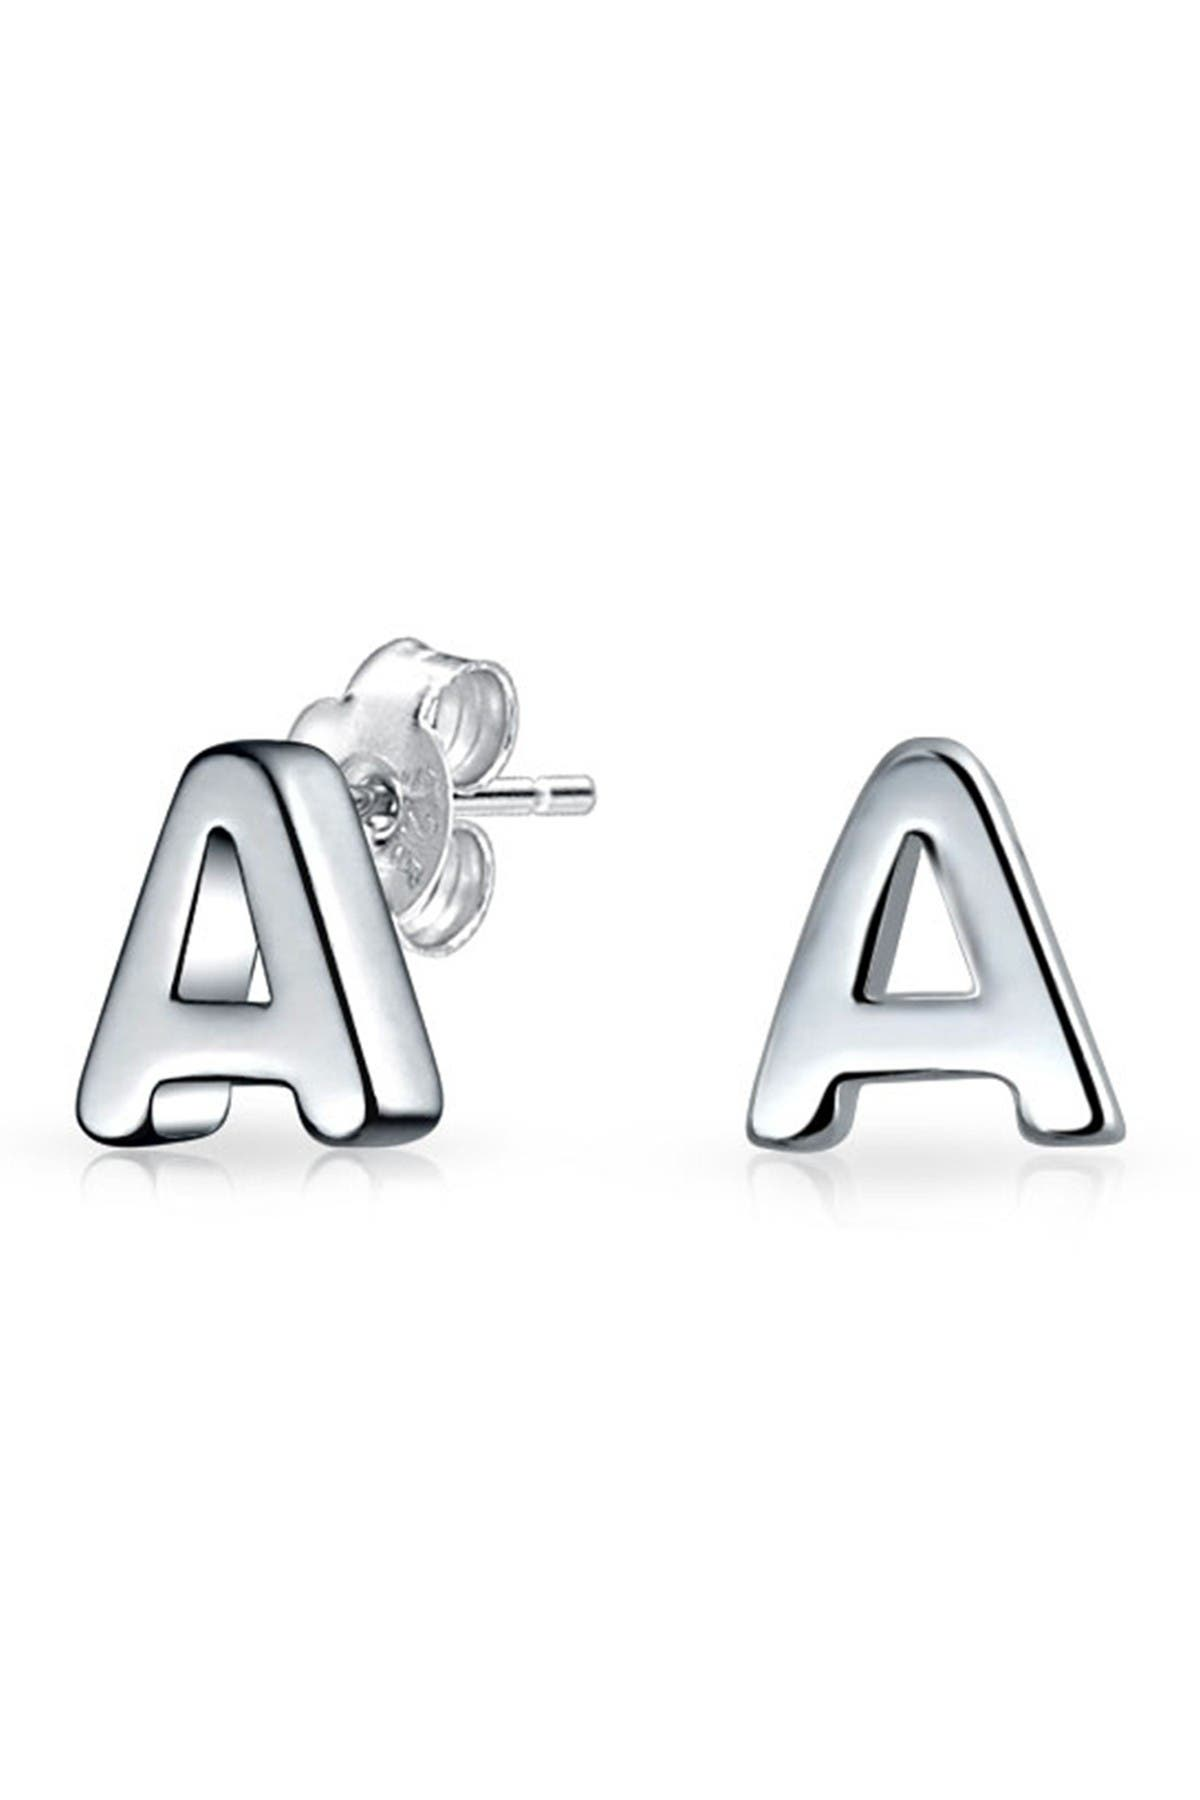 Image of Bling Jewelry Sterling Silver Capital Block Alphabet Letter Earrings